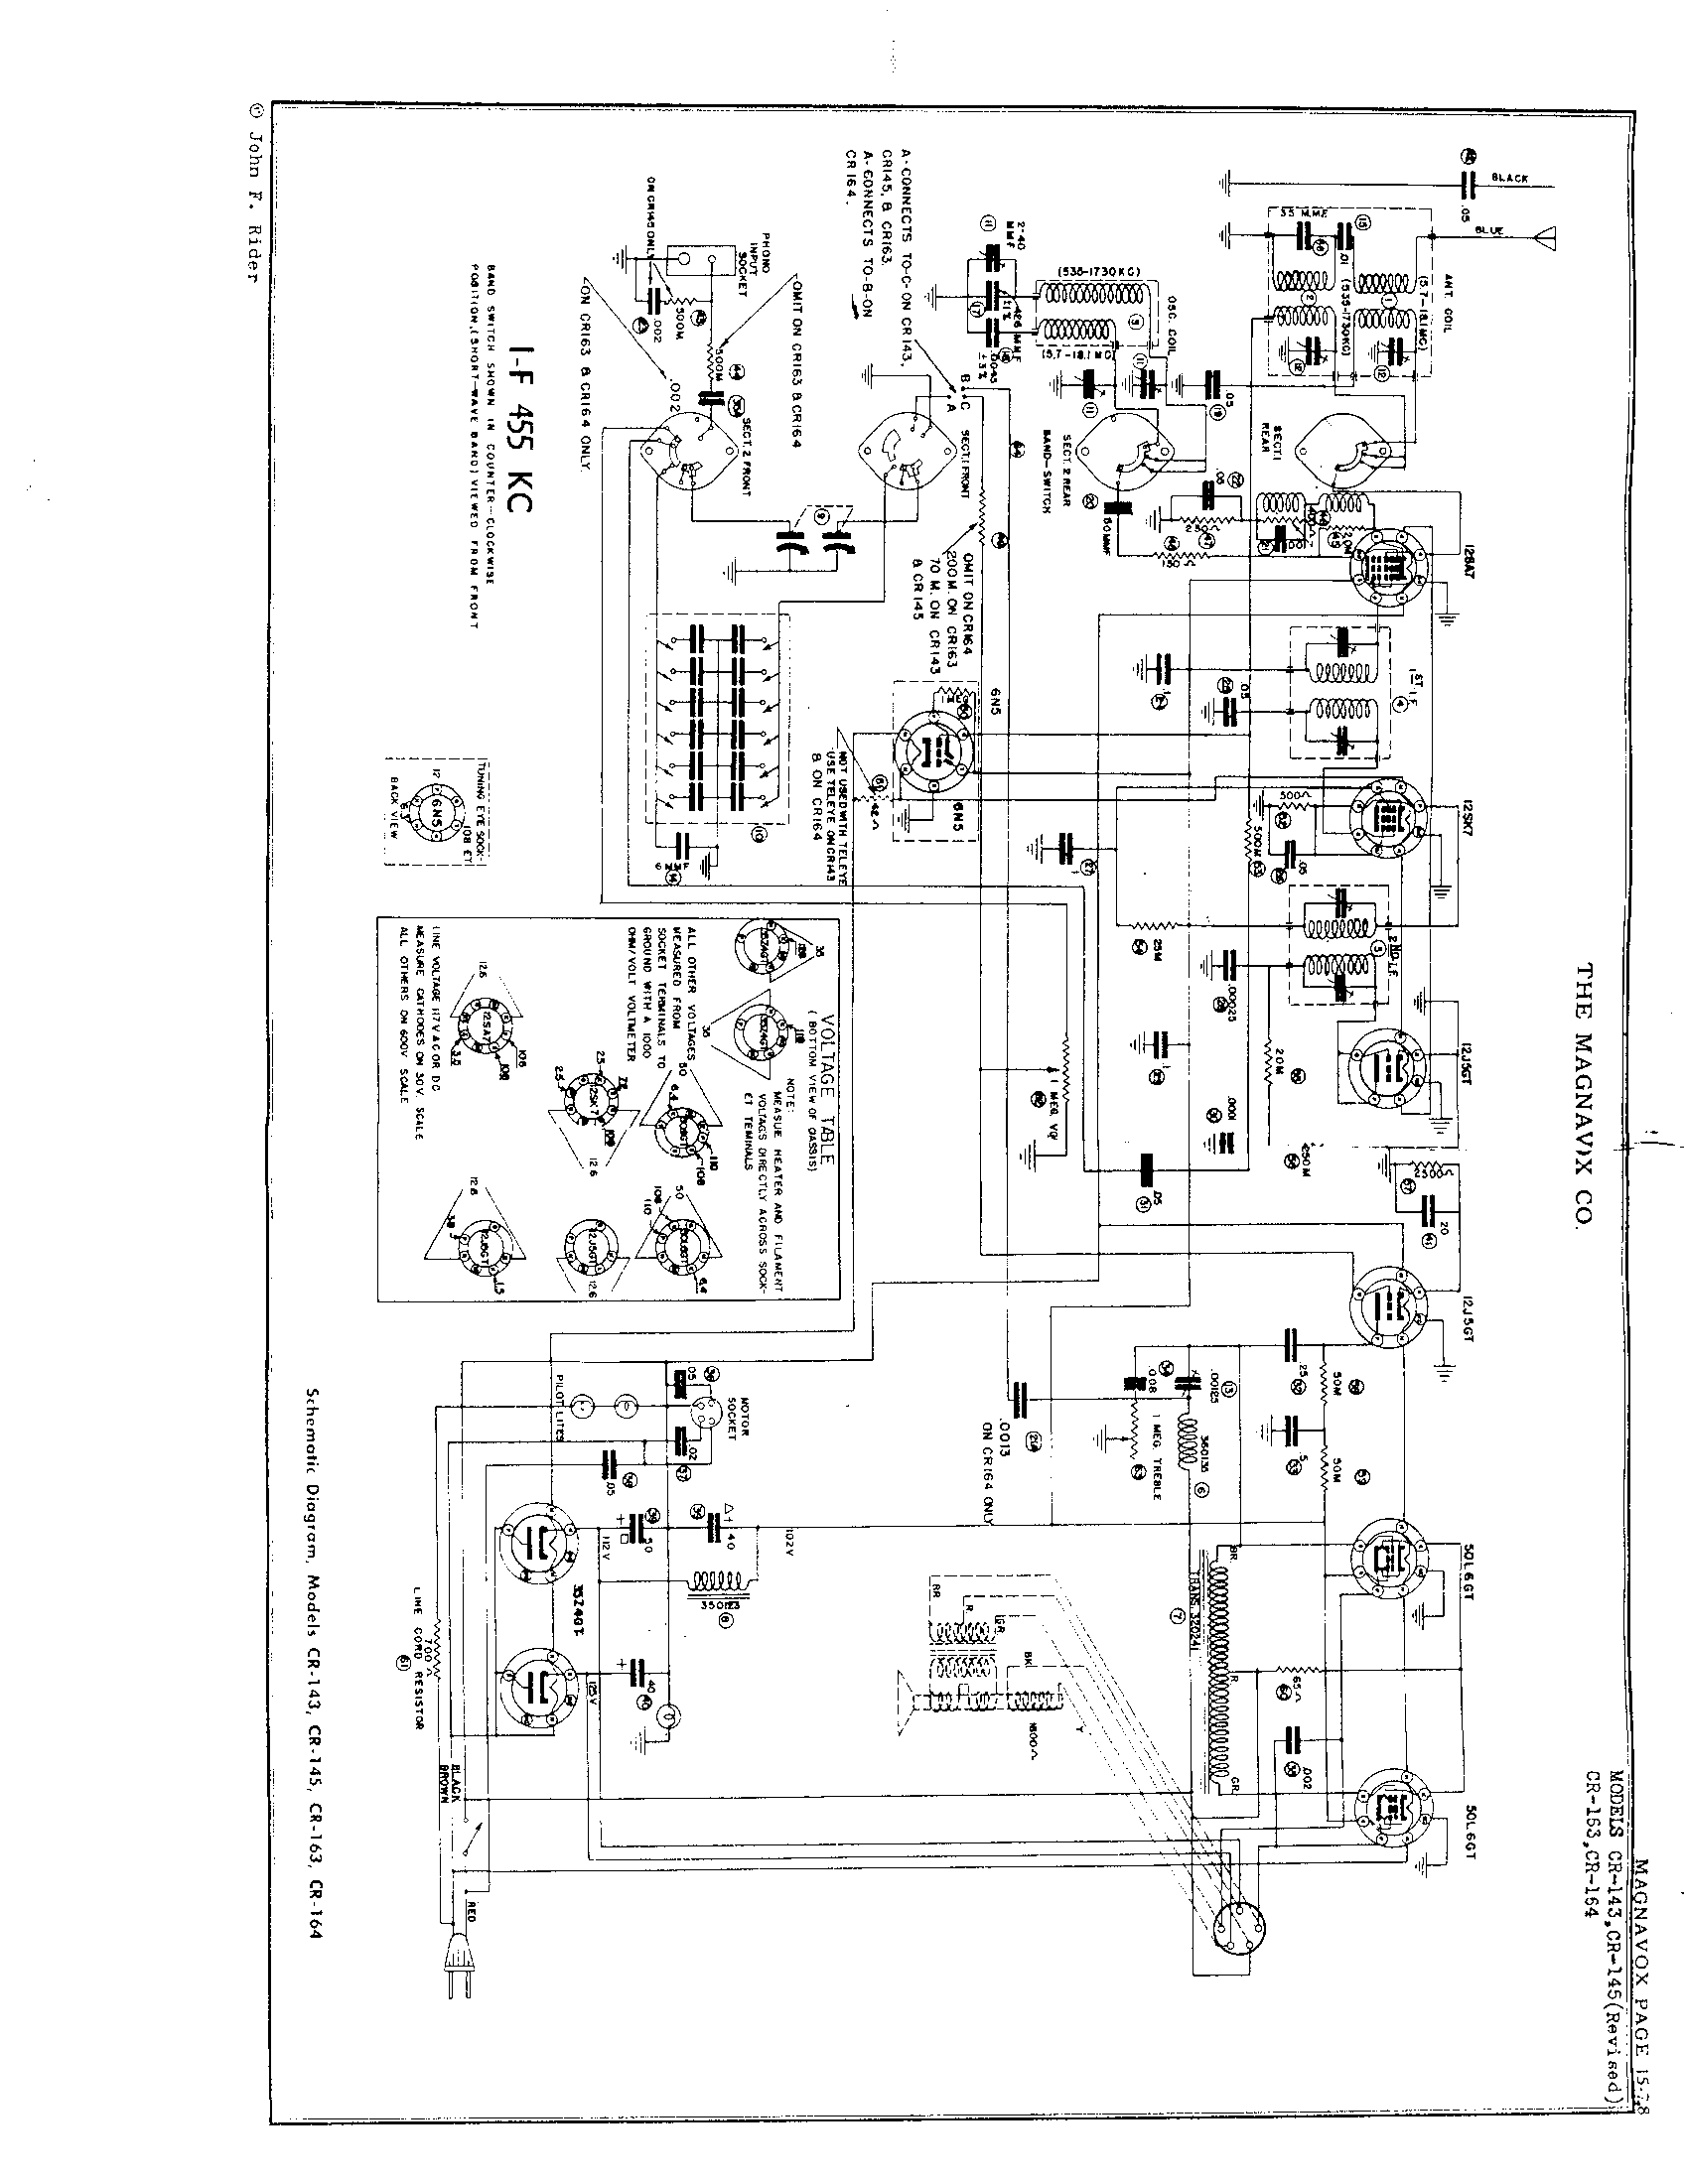 Kellogg Telephone Wiring Diagram Phone Jack Wiring Diagram